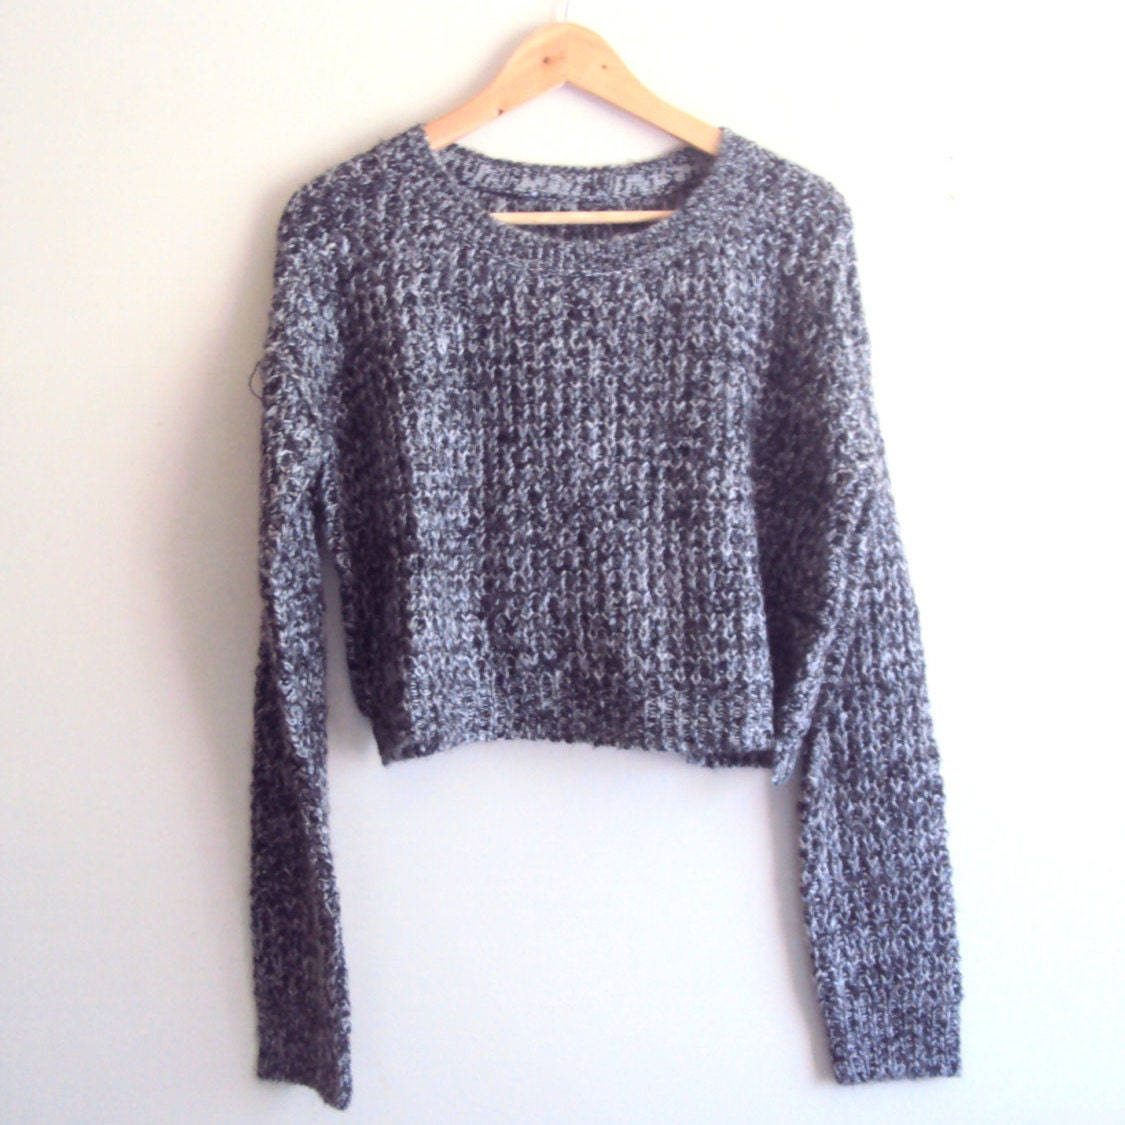 Knitting Pattern Boyfriend Jumper : SALE Knit Boyfriend Sweater Knit Crop Sweater Heather Black